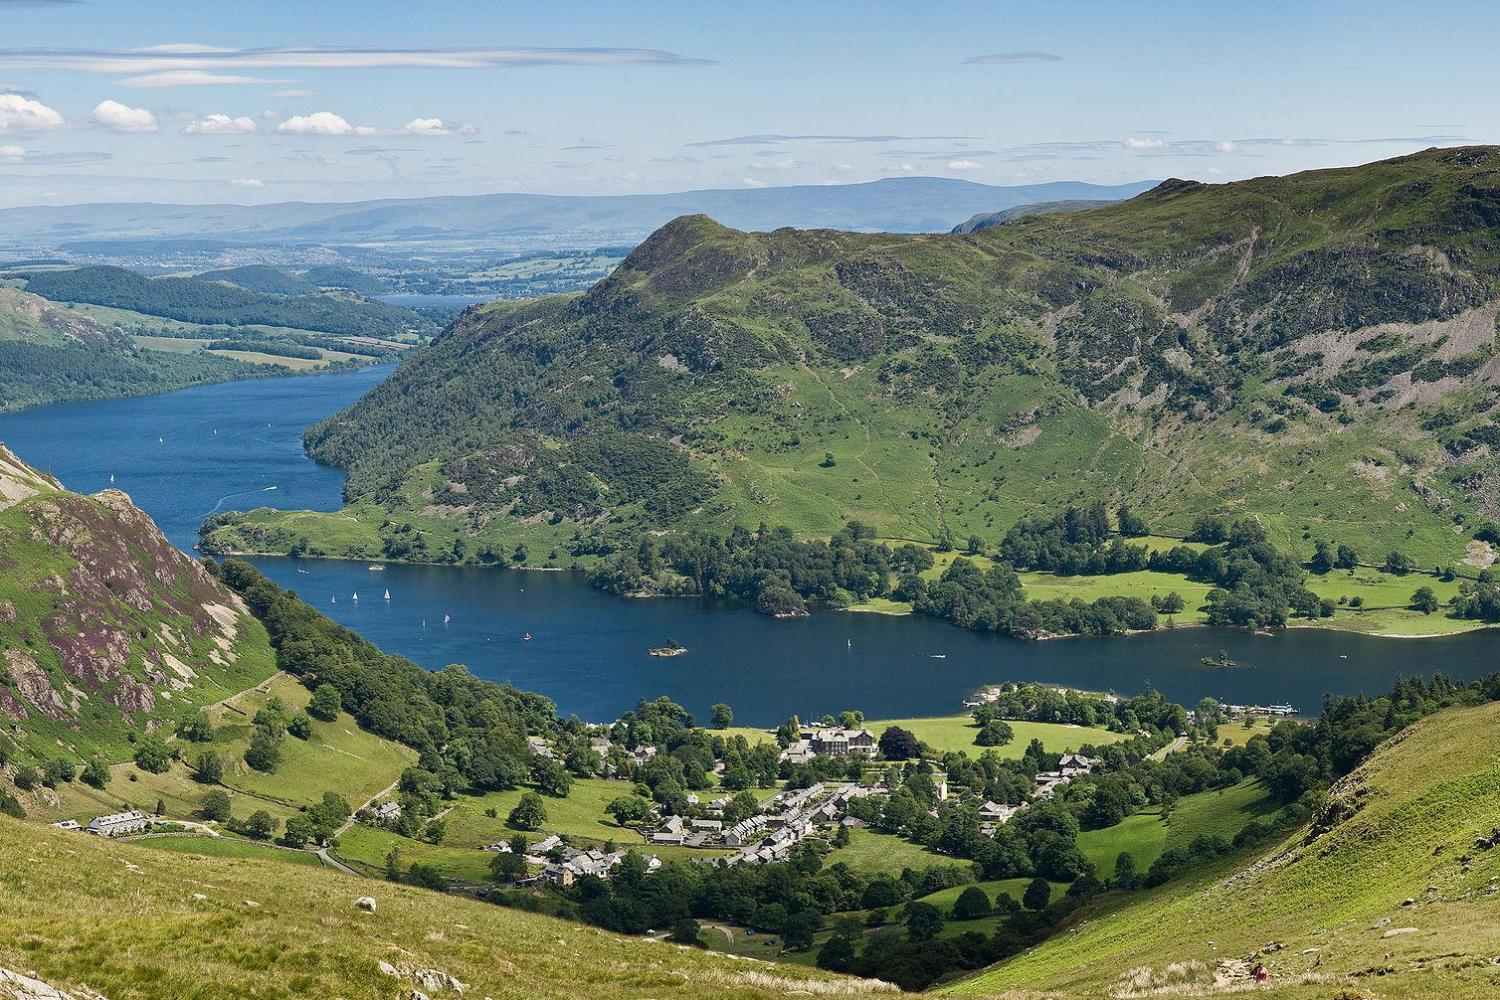 Ullswater and Patterdale in the Lake District. Image by Kreuzschnabel. Licence: CC-by-SA-3.0